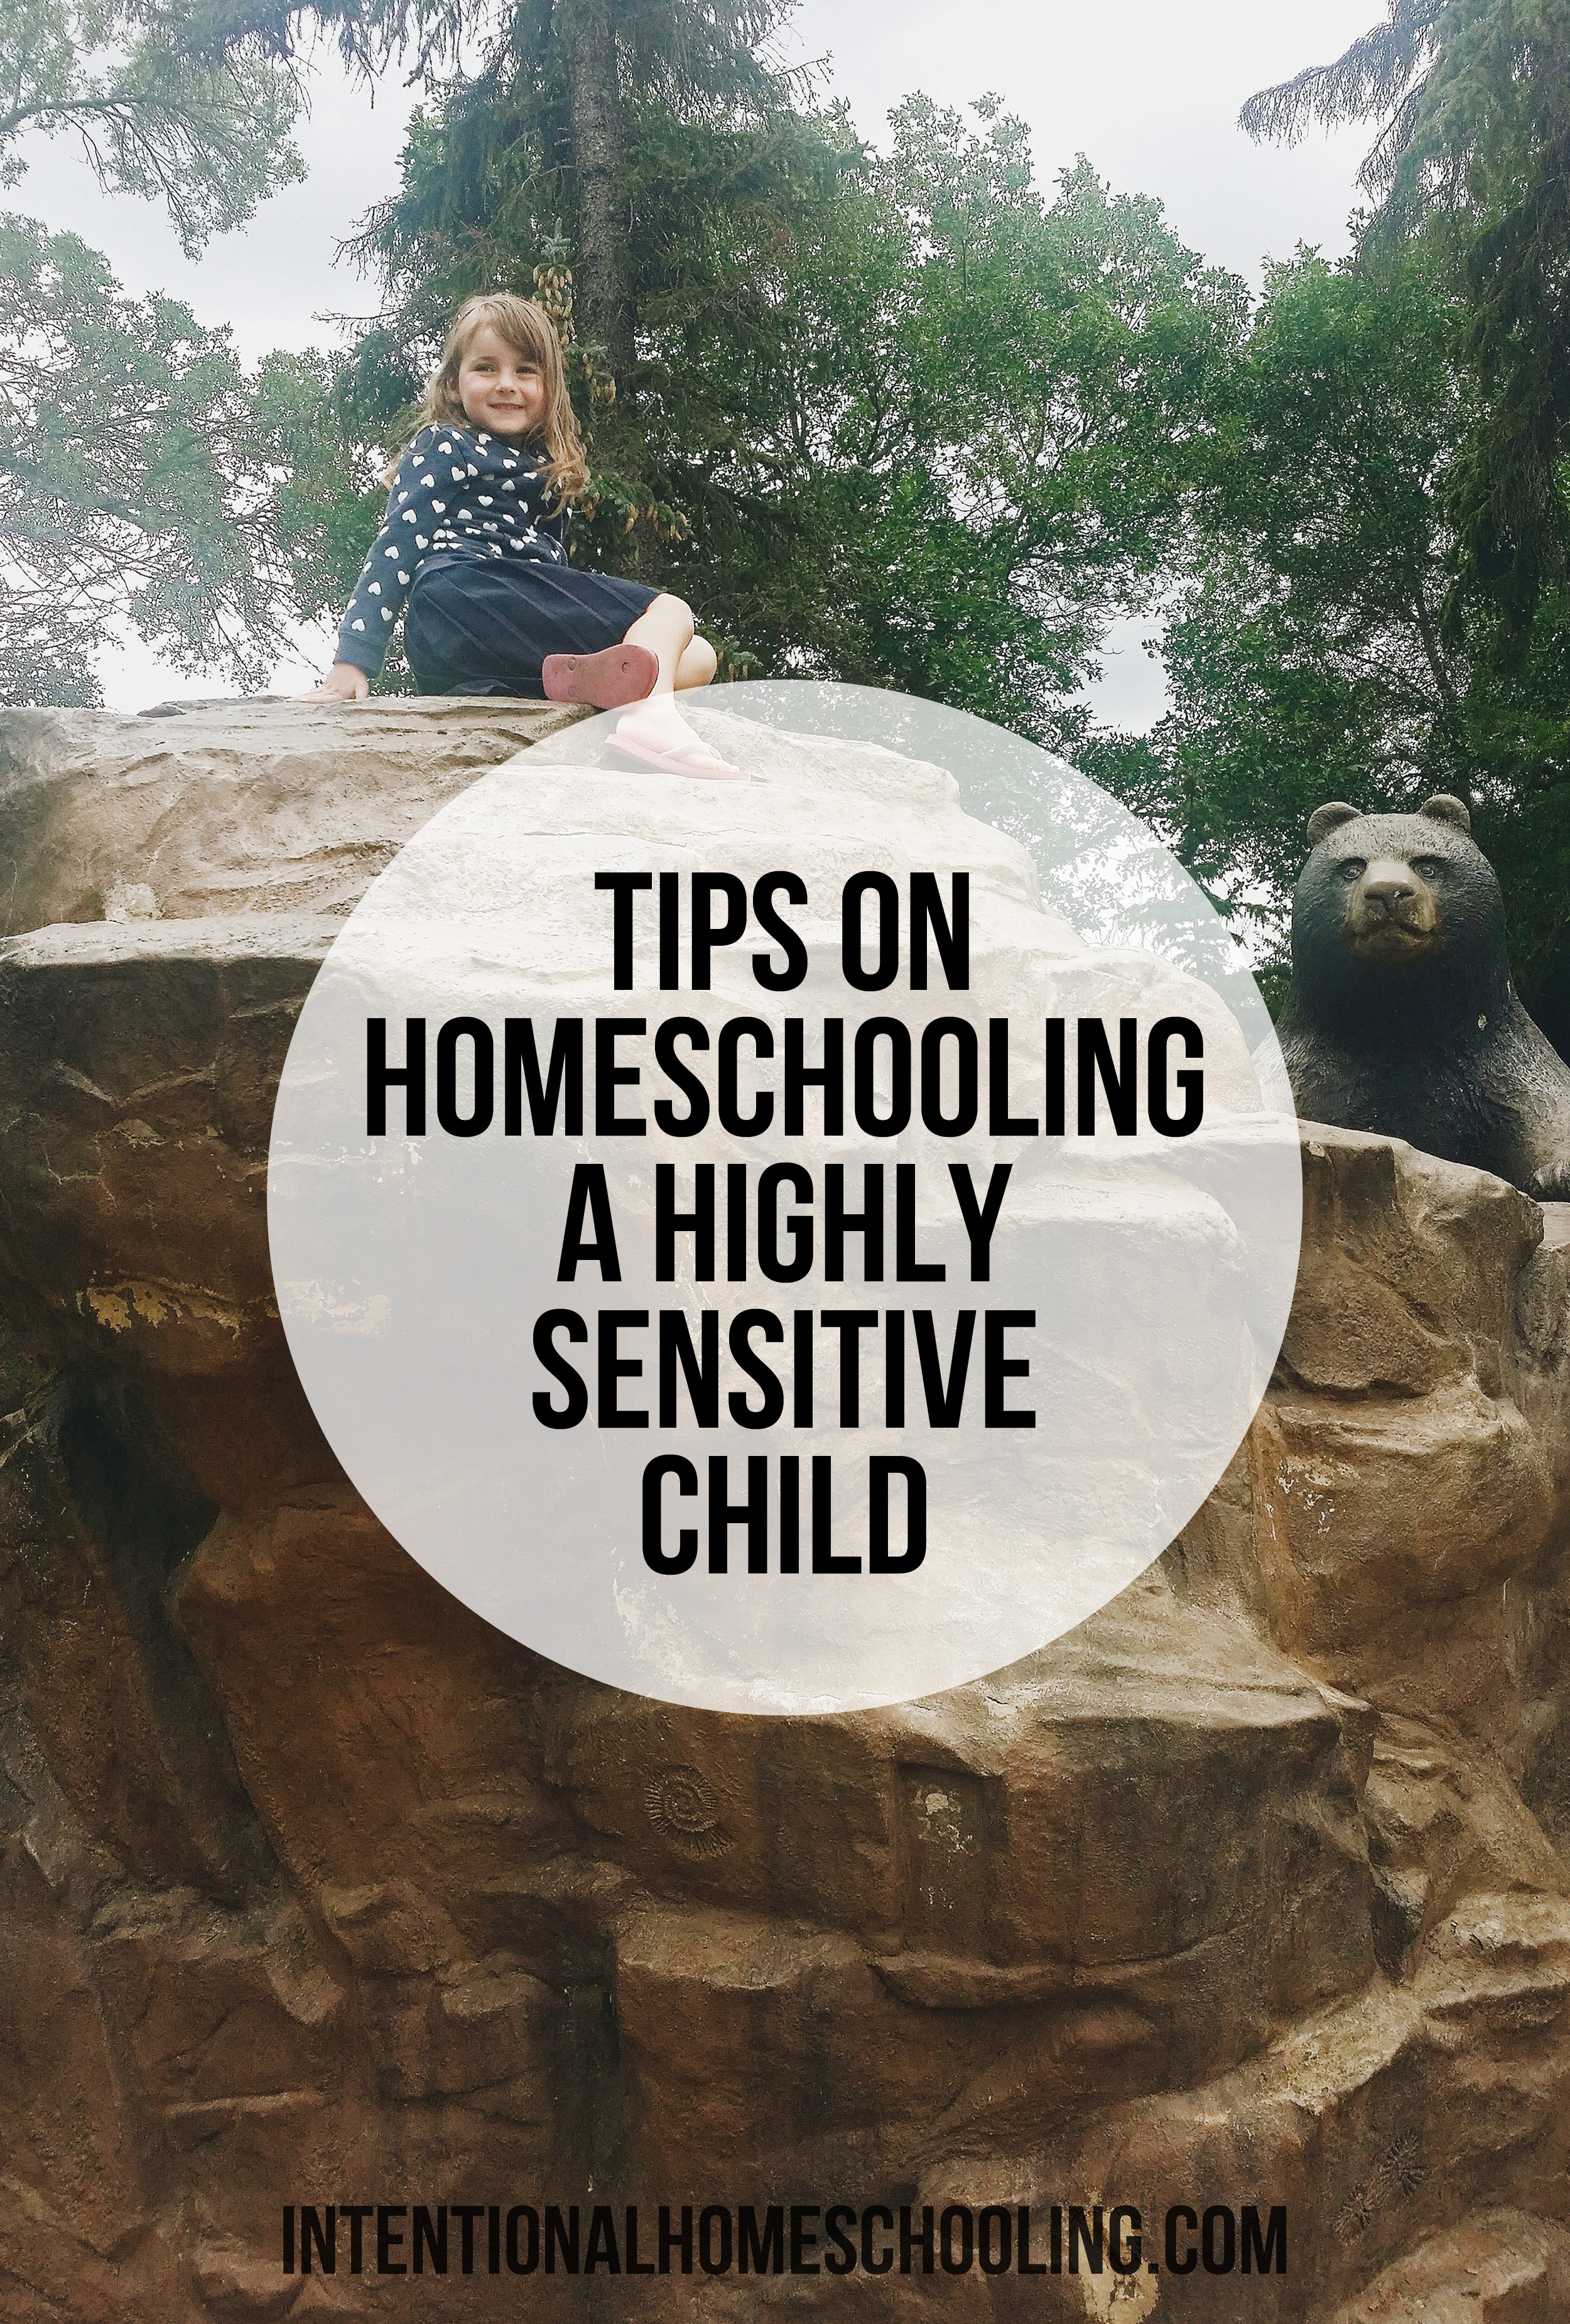 Tips on how to homeschool a highly sensitive child, little adjustments you can make in your homeschool to make the days easier for everyone.